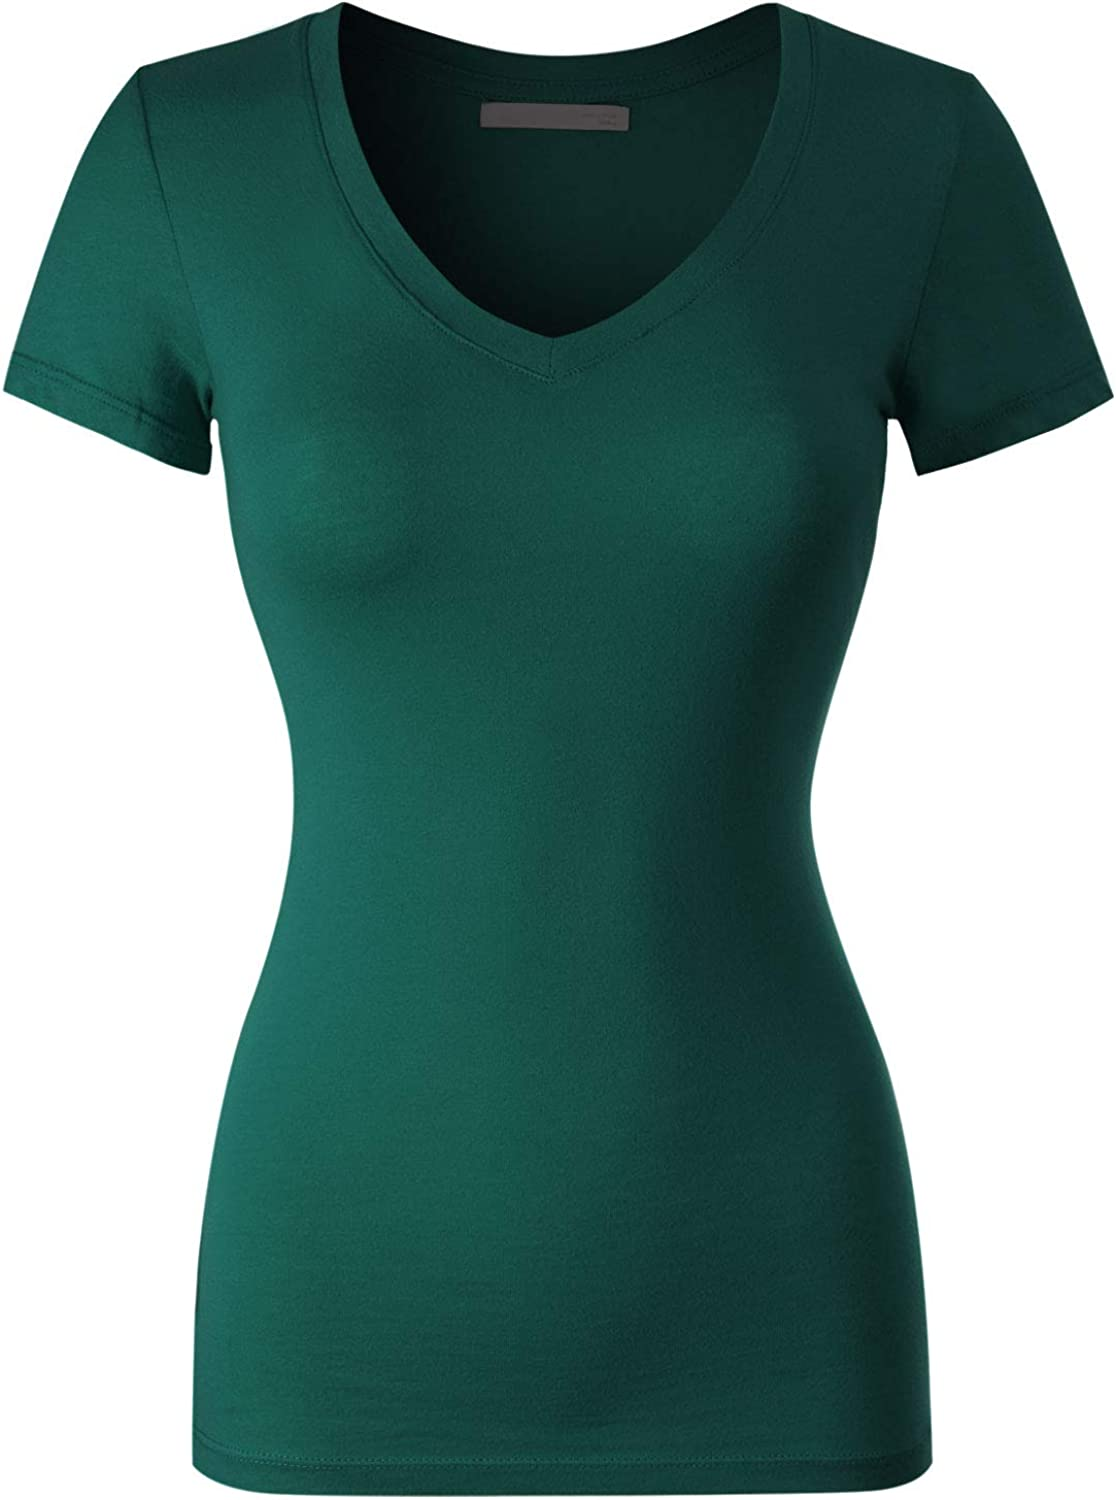 Design by Olivia Women's Basic Solid Multi Colors Fitted Short Sleeve T-Shirt [S-3XL]